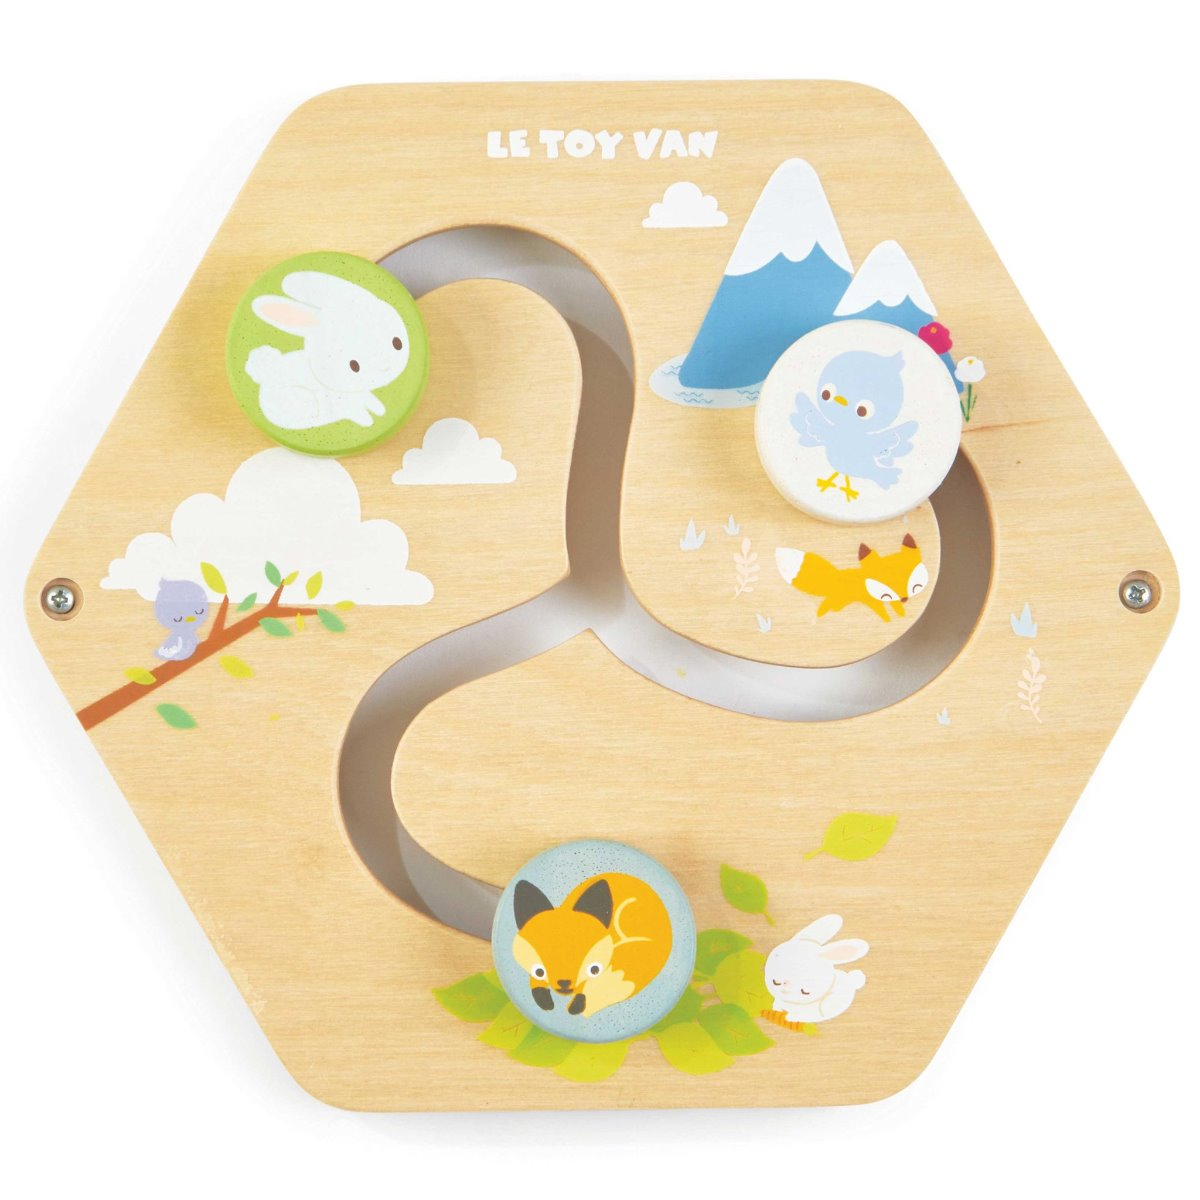 Le Toy Van Activity Tile Home Maze Puzzle at Little Sprout